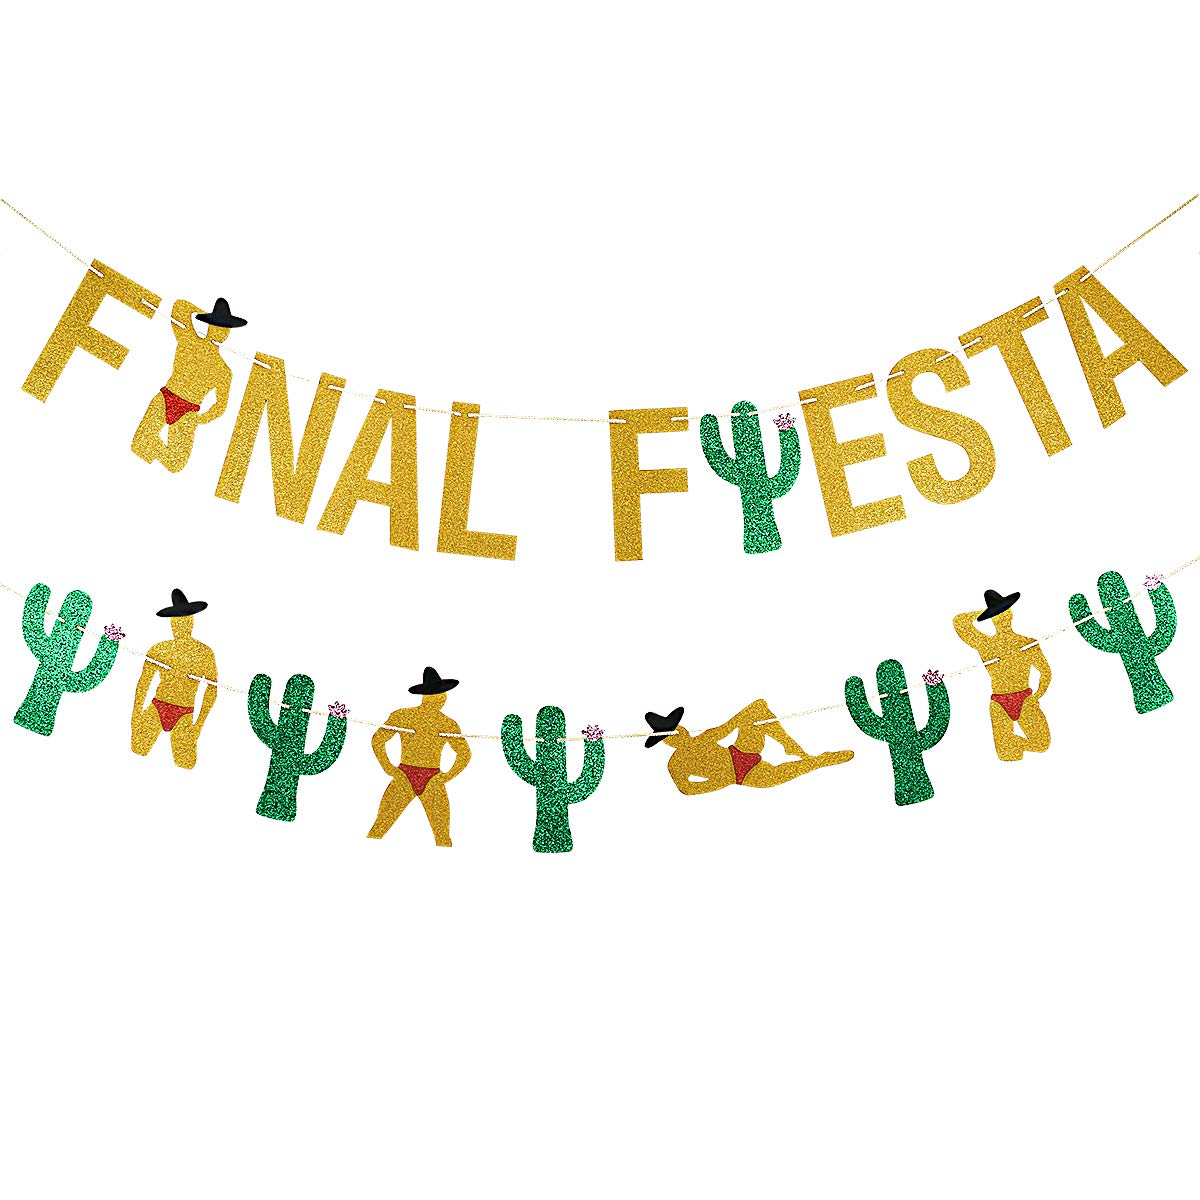 Gold Glittery Final Fiesta Banner and Glittery Cactus Man Garland- Mexican FiestaTheme Party Decor Bachelorette Wedding Party Decorations